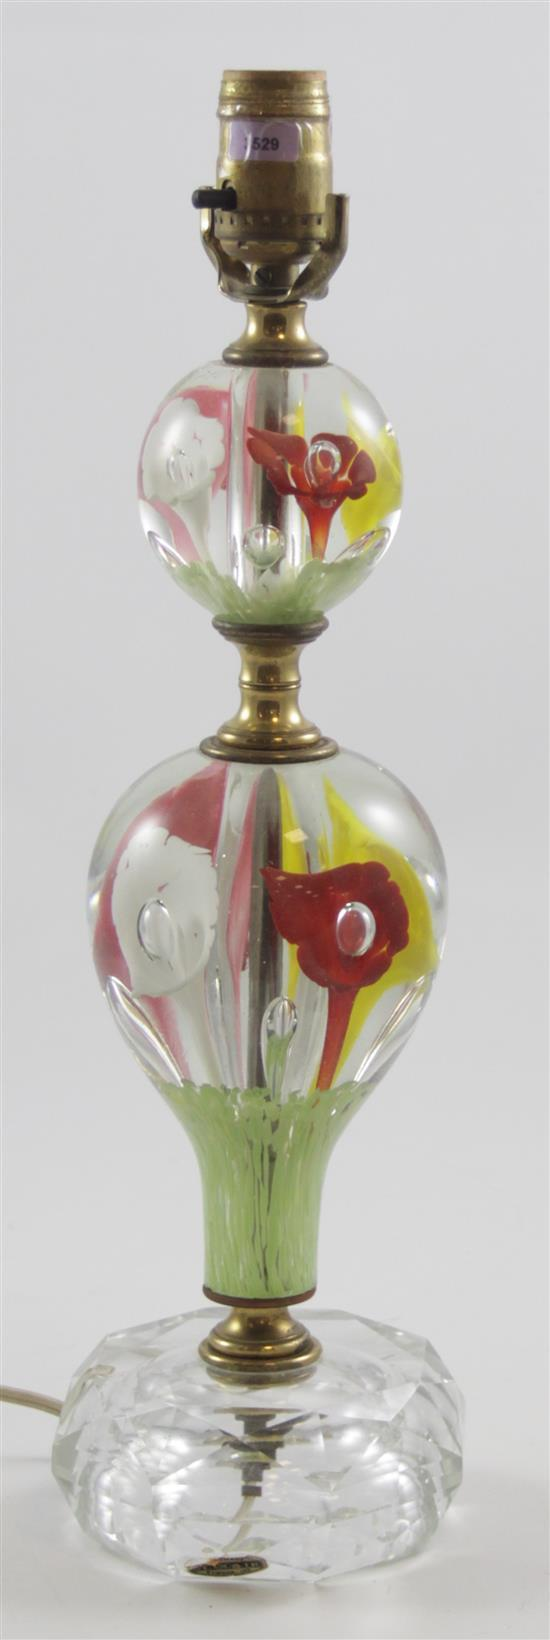 ST CLAIR GLASS TABLE LAMP WITH MULTI-COLOR TRUMPET FLOWERS, 17.5